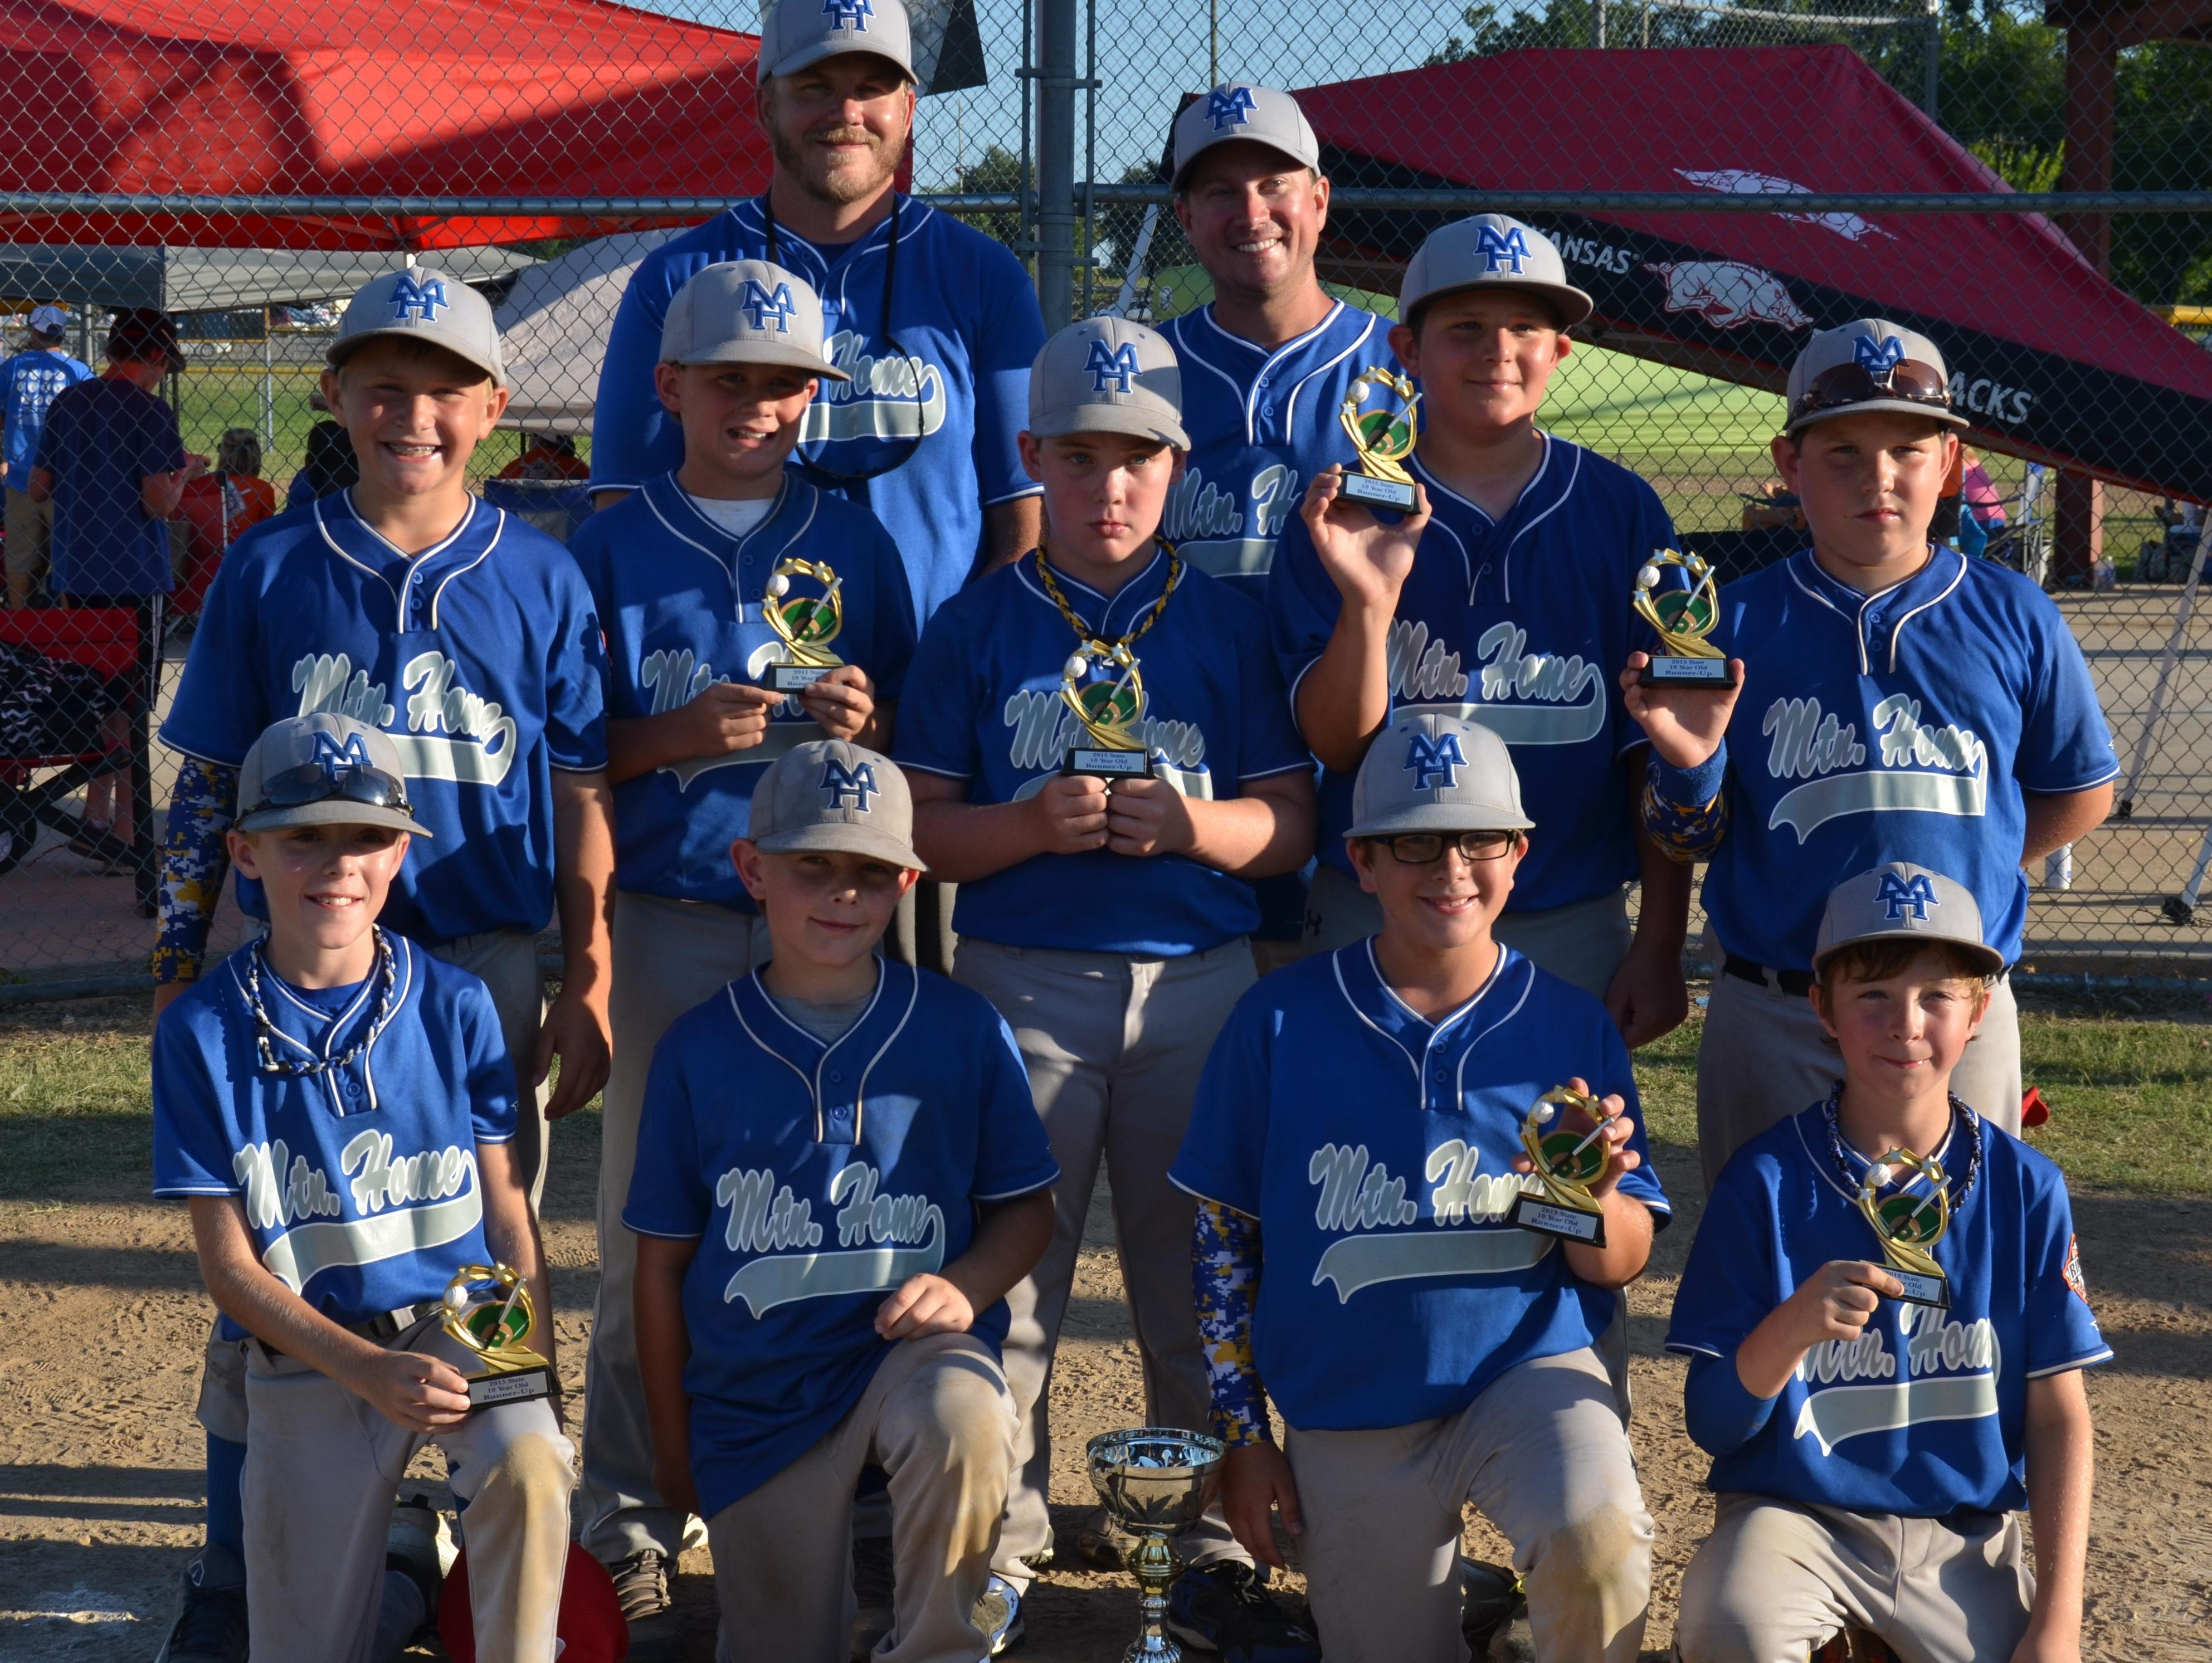 The Mountain Home Elite, a 10-year-old baseball team, competed in the USSSA State Tournament last weekend in Greenwood. Pool play Saturday earned the team a No. 3 seed for bracket play Sunday. After a bye, the Elite beat Conway 9-1 and Salem 7-6. In the championship game, they came up short against Hot Springs, 7-3, but were proud of a runner-up finish in the 12-team field. Team members are: first row, from left, Colton Cooley, Daniel Jones, Christopher Lindenmeyer, Khonner Harmon; second row, Talen Martin, Hagan Robb, Daden House, Colin Beam, Cooper Friend; third row, coaches Ryan Robb and Chad Lindenmeyer. Not pictured are Ty Lawrence, Ethan Bland, Grayden Rowbotham and coaches Earl Blasdel and Eric Rowbotham.